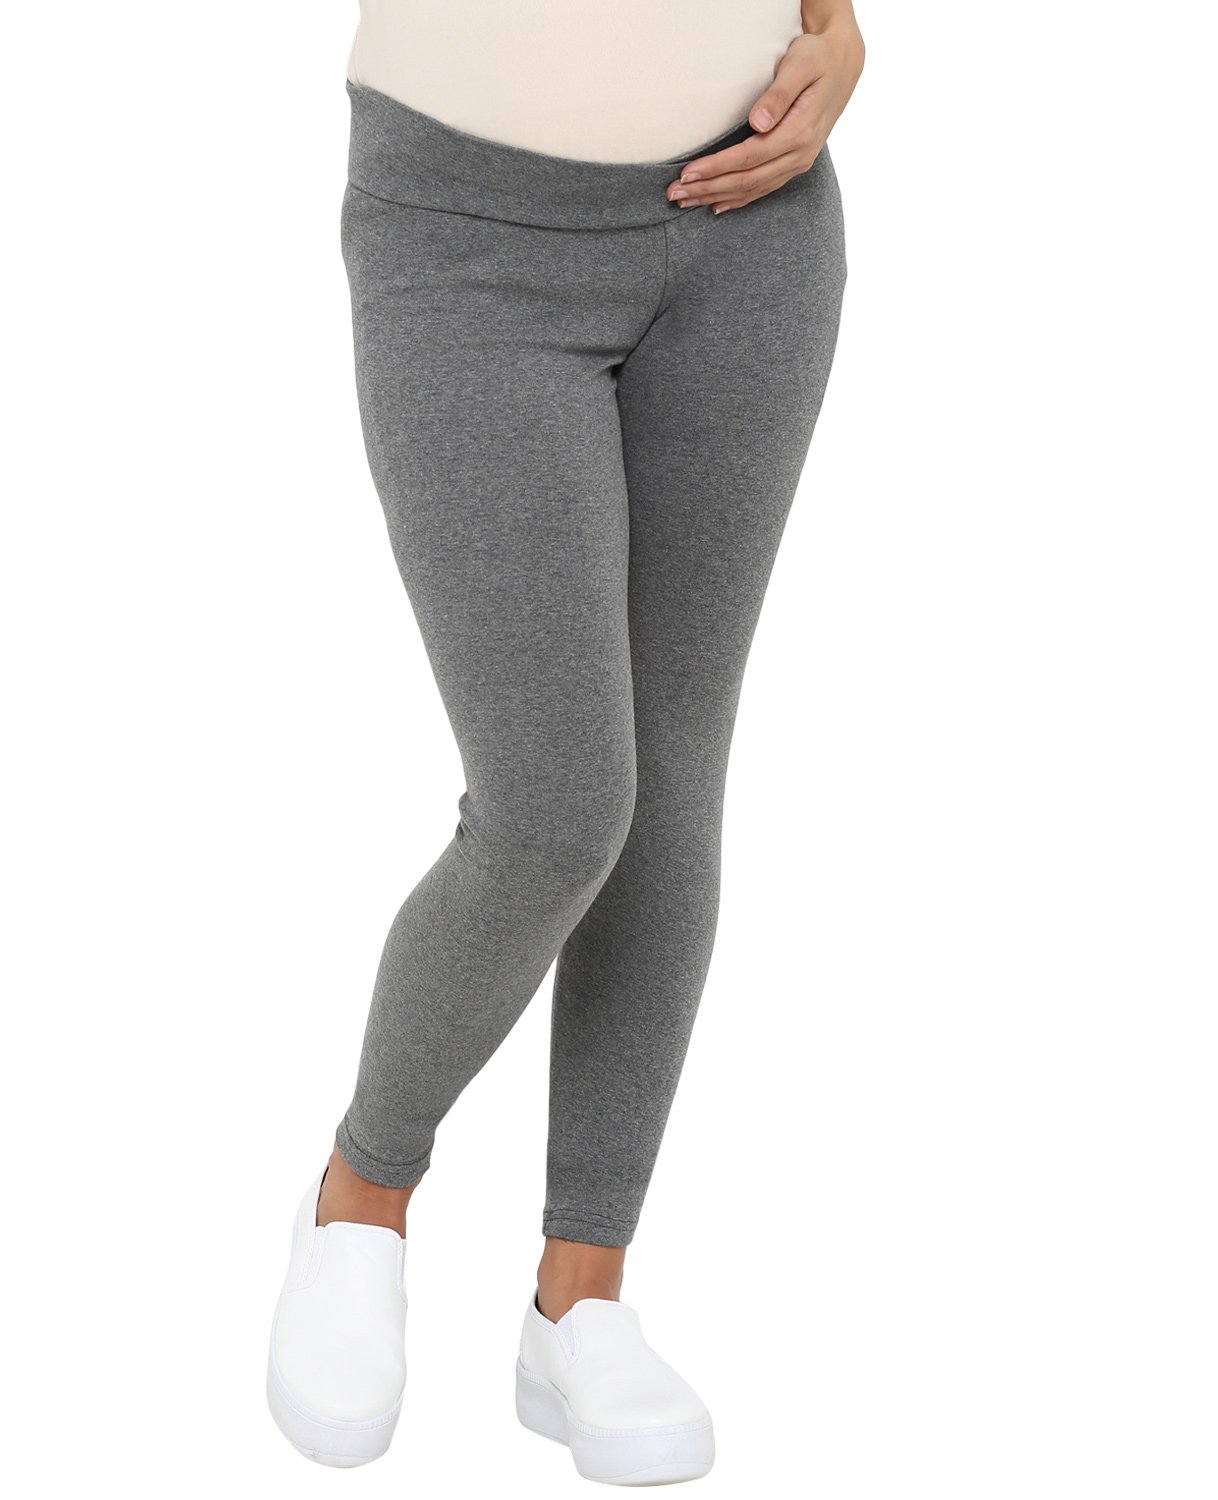 3ed86321d7891 Mamacouture Full Length Solid Maternity Leggings Grey Online in ...